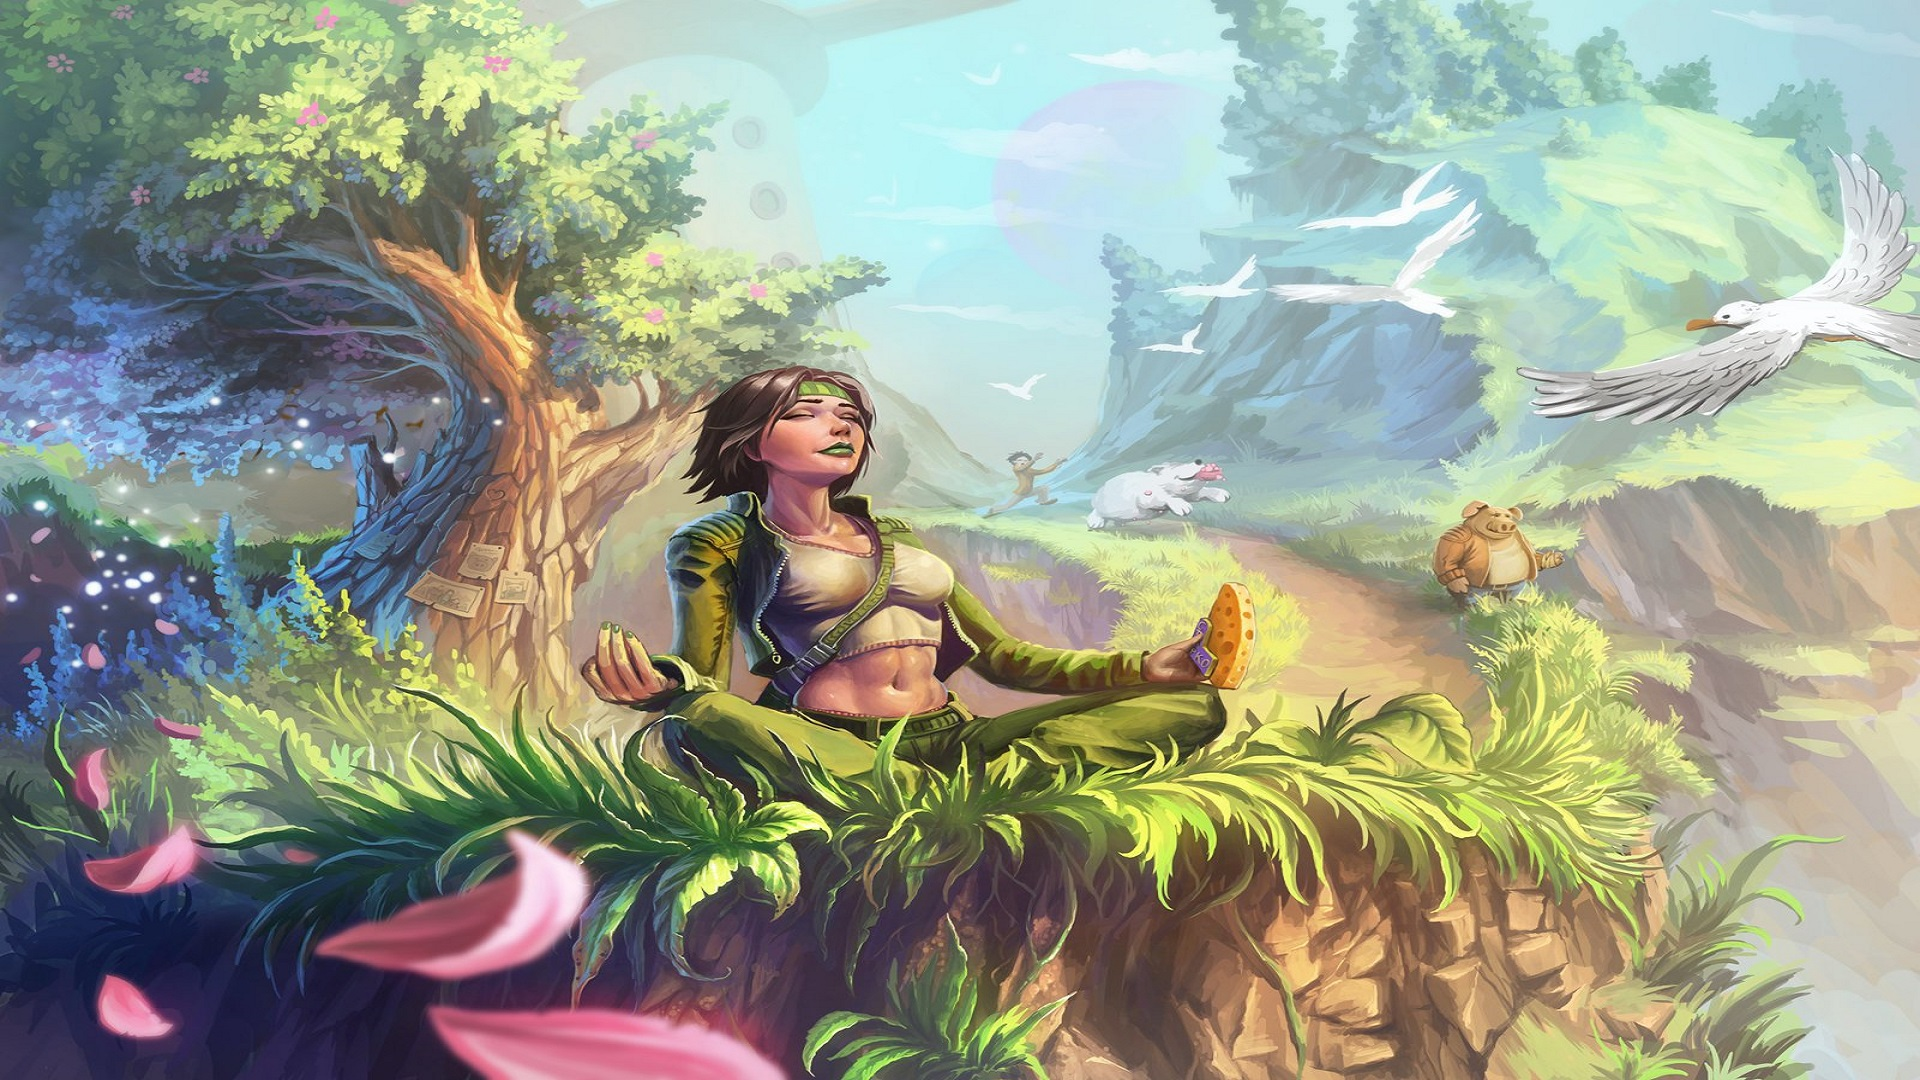 Save Beyond Good and Evil 2 HD Wallpapers - Read games review, play online games & download ...